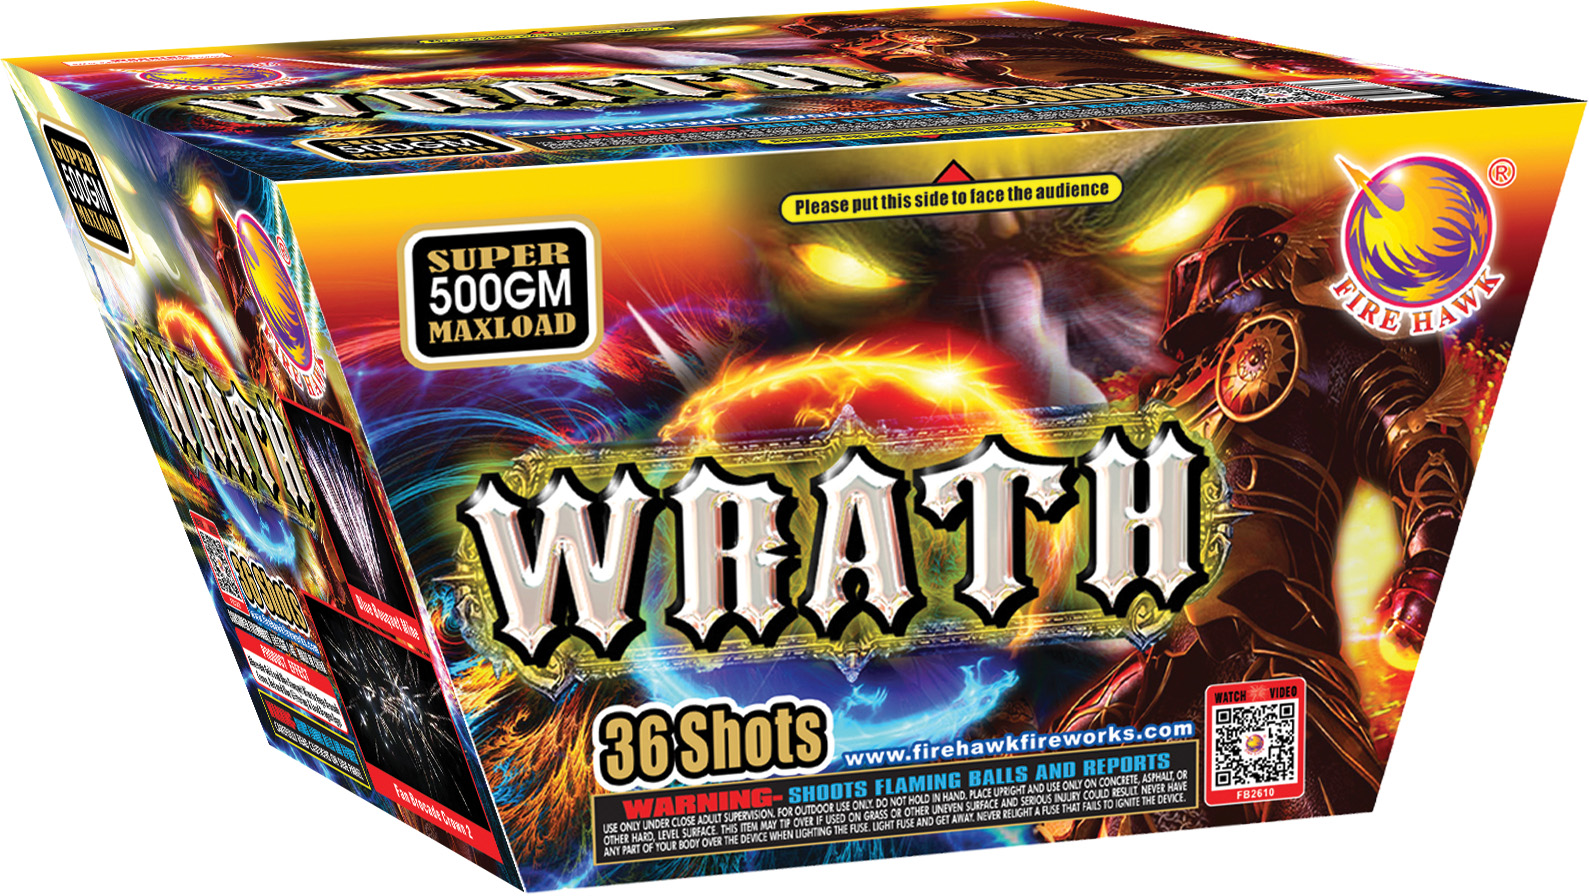 FB2567 Wrath